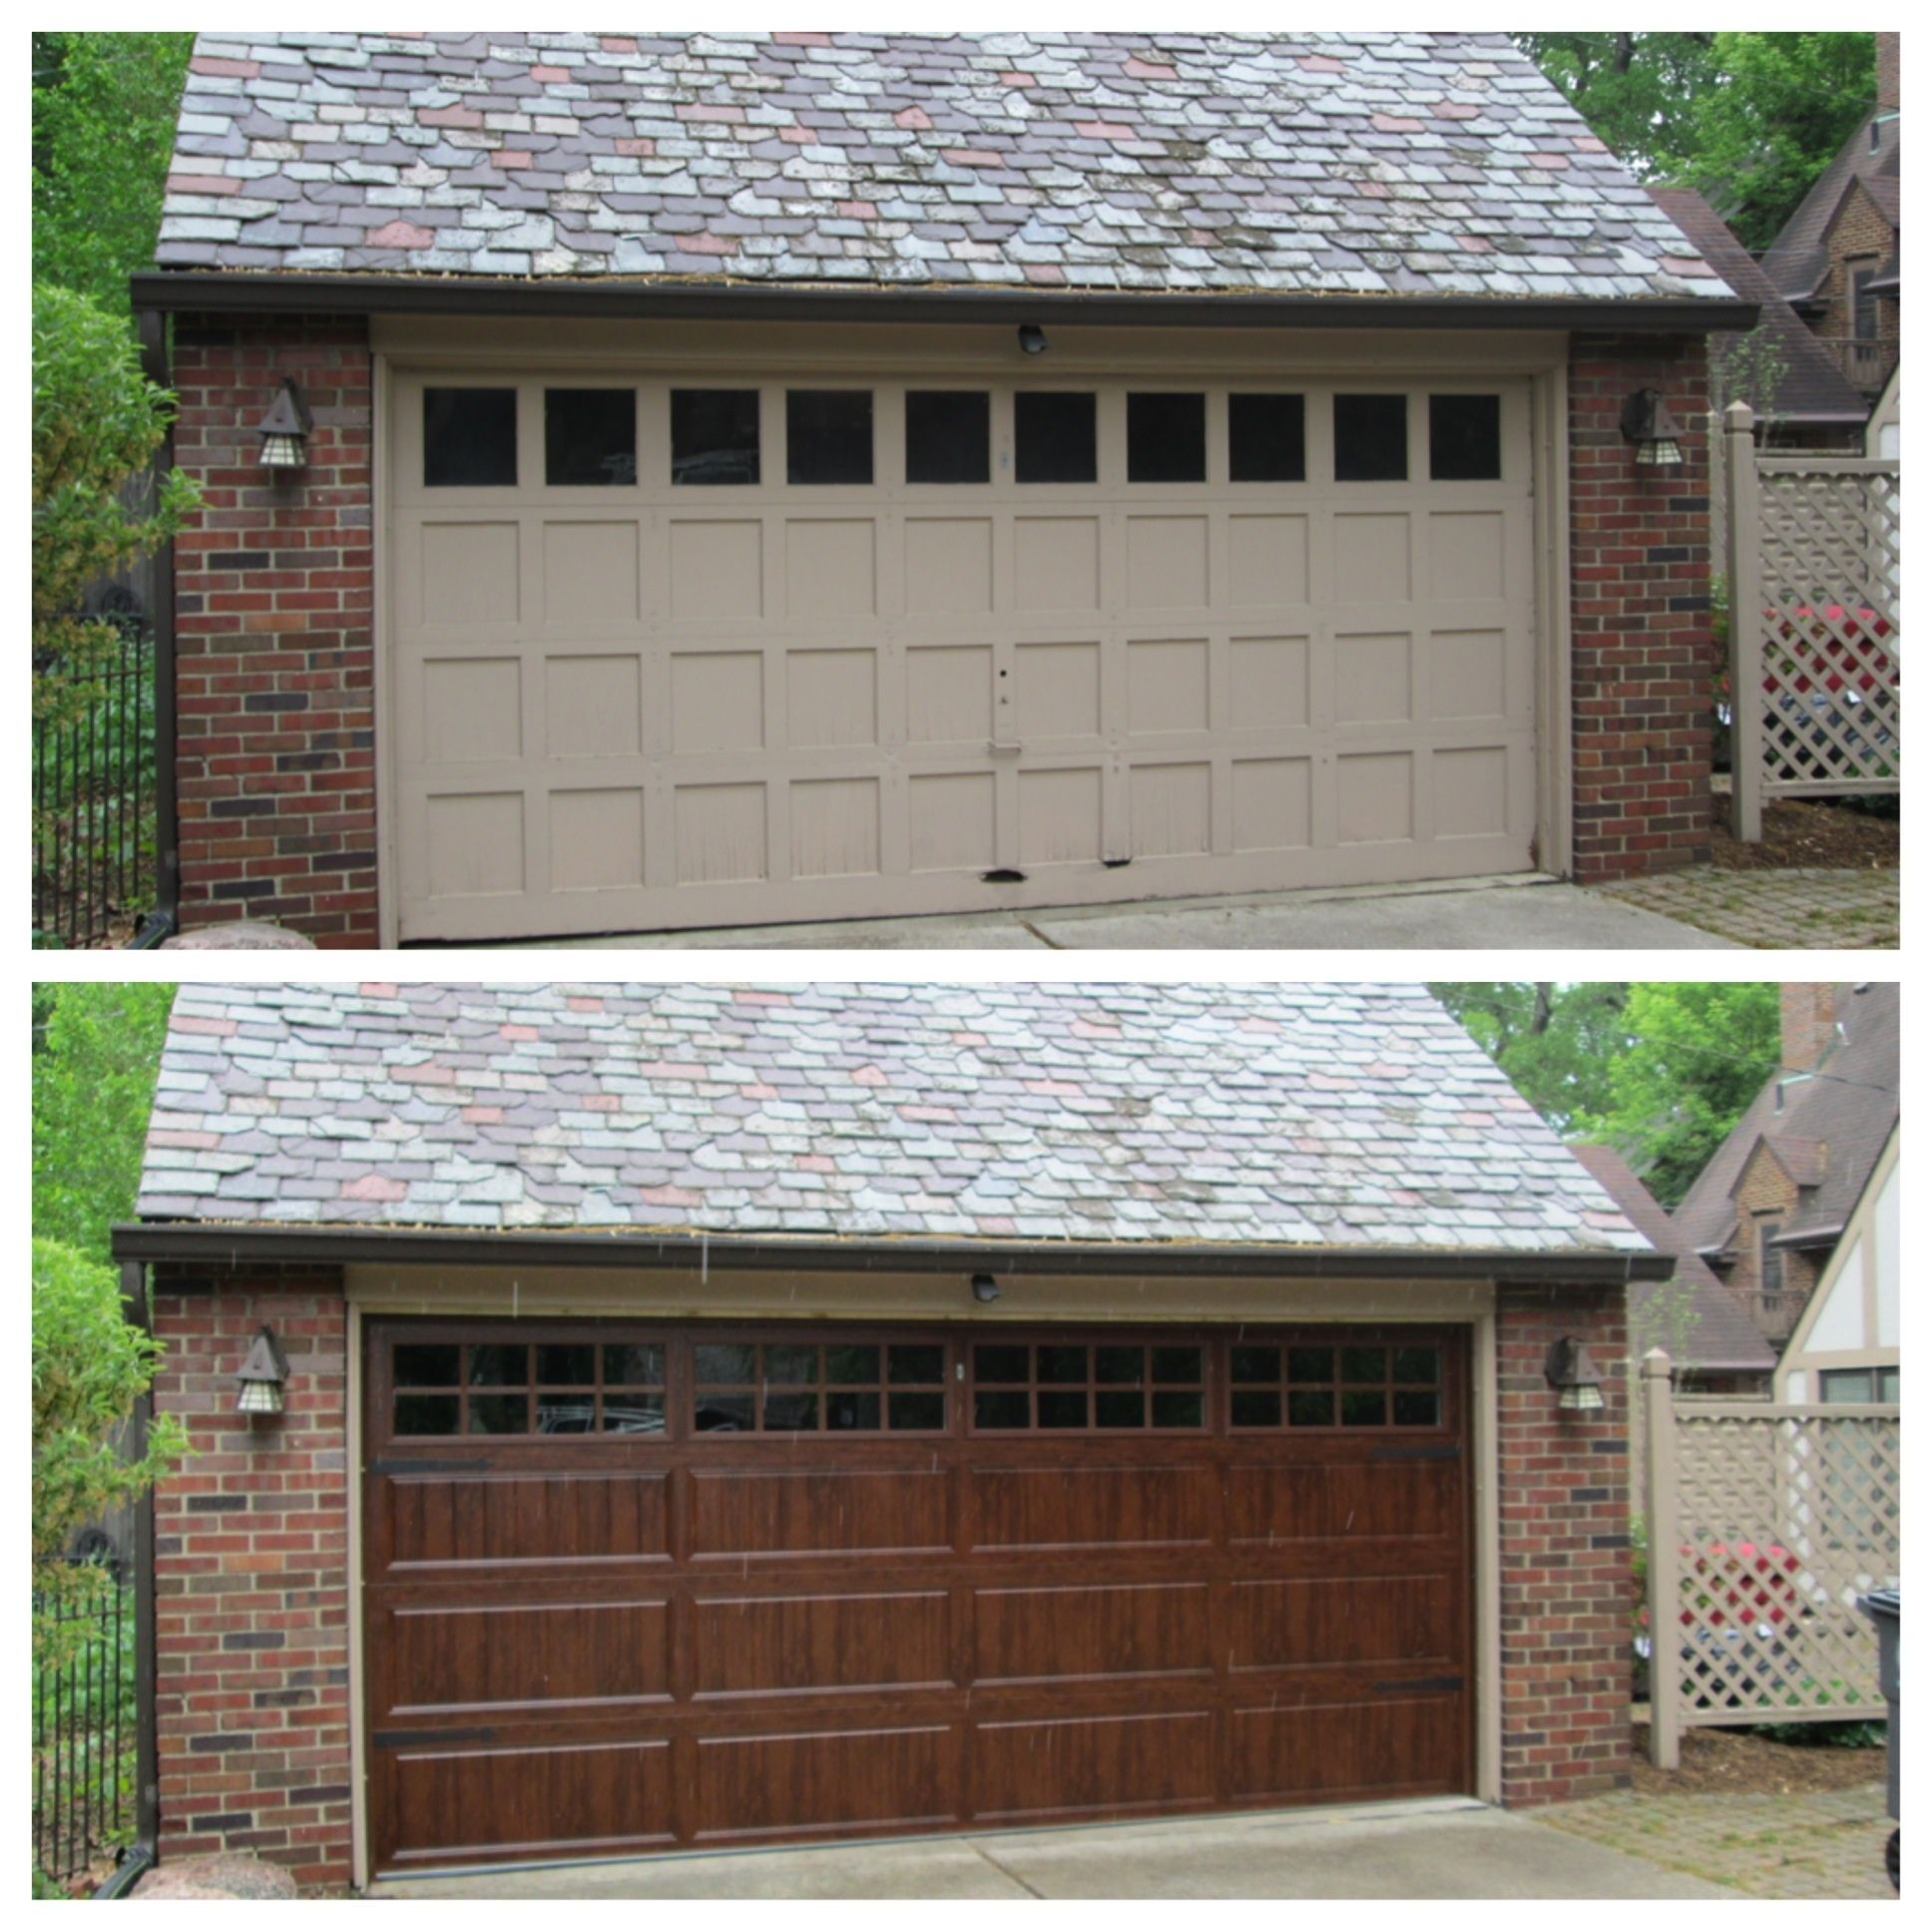 Steel Garage Doors Gallery Collection Garage Doors Garage Door Design Wood Garage Doors